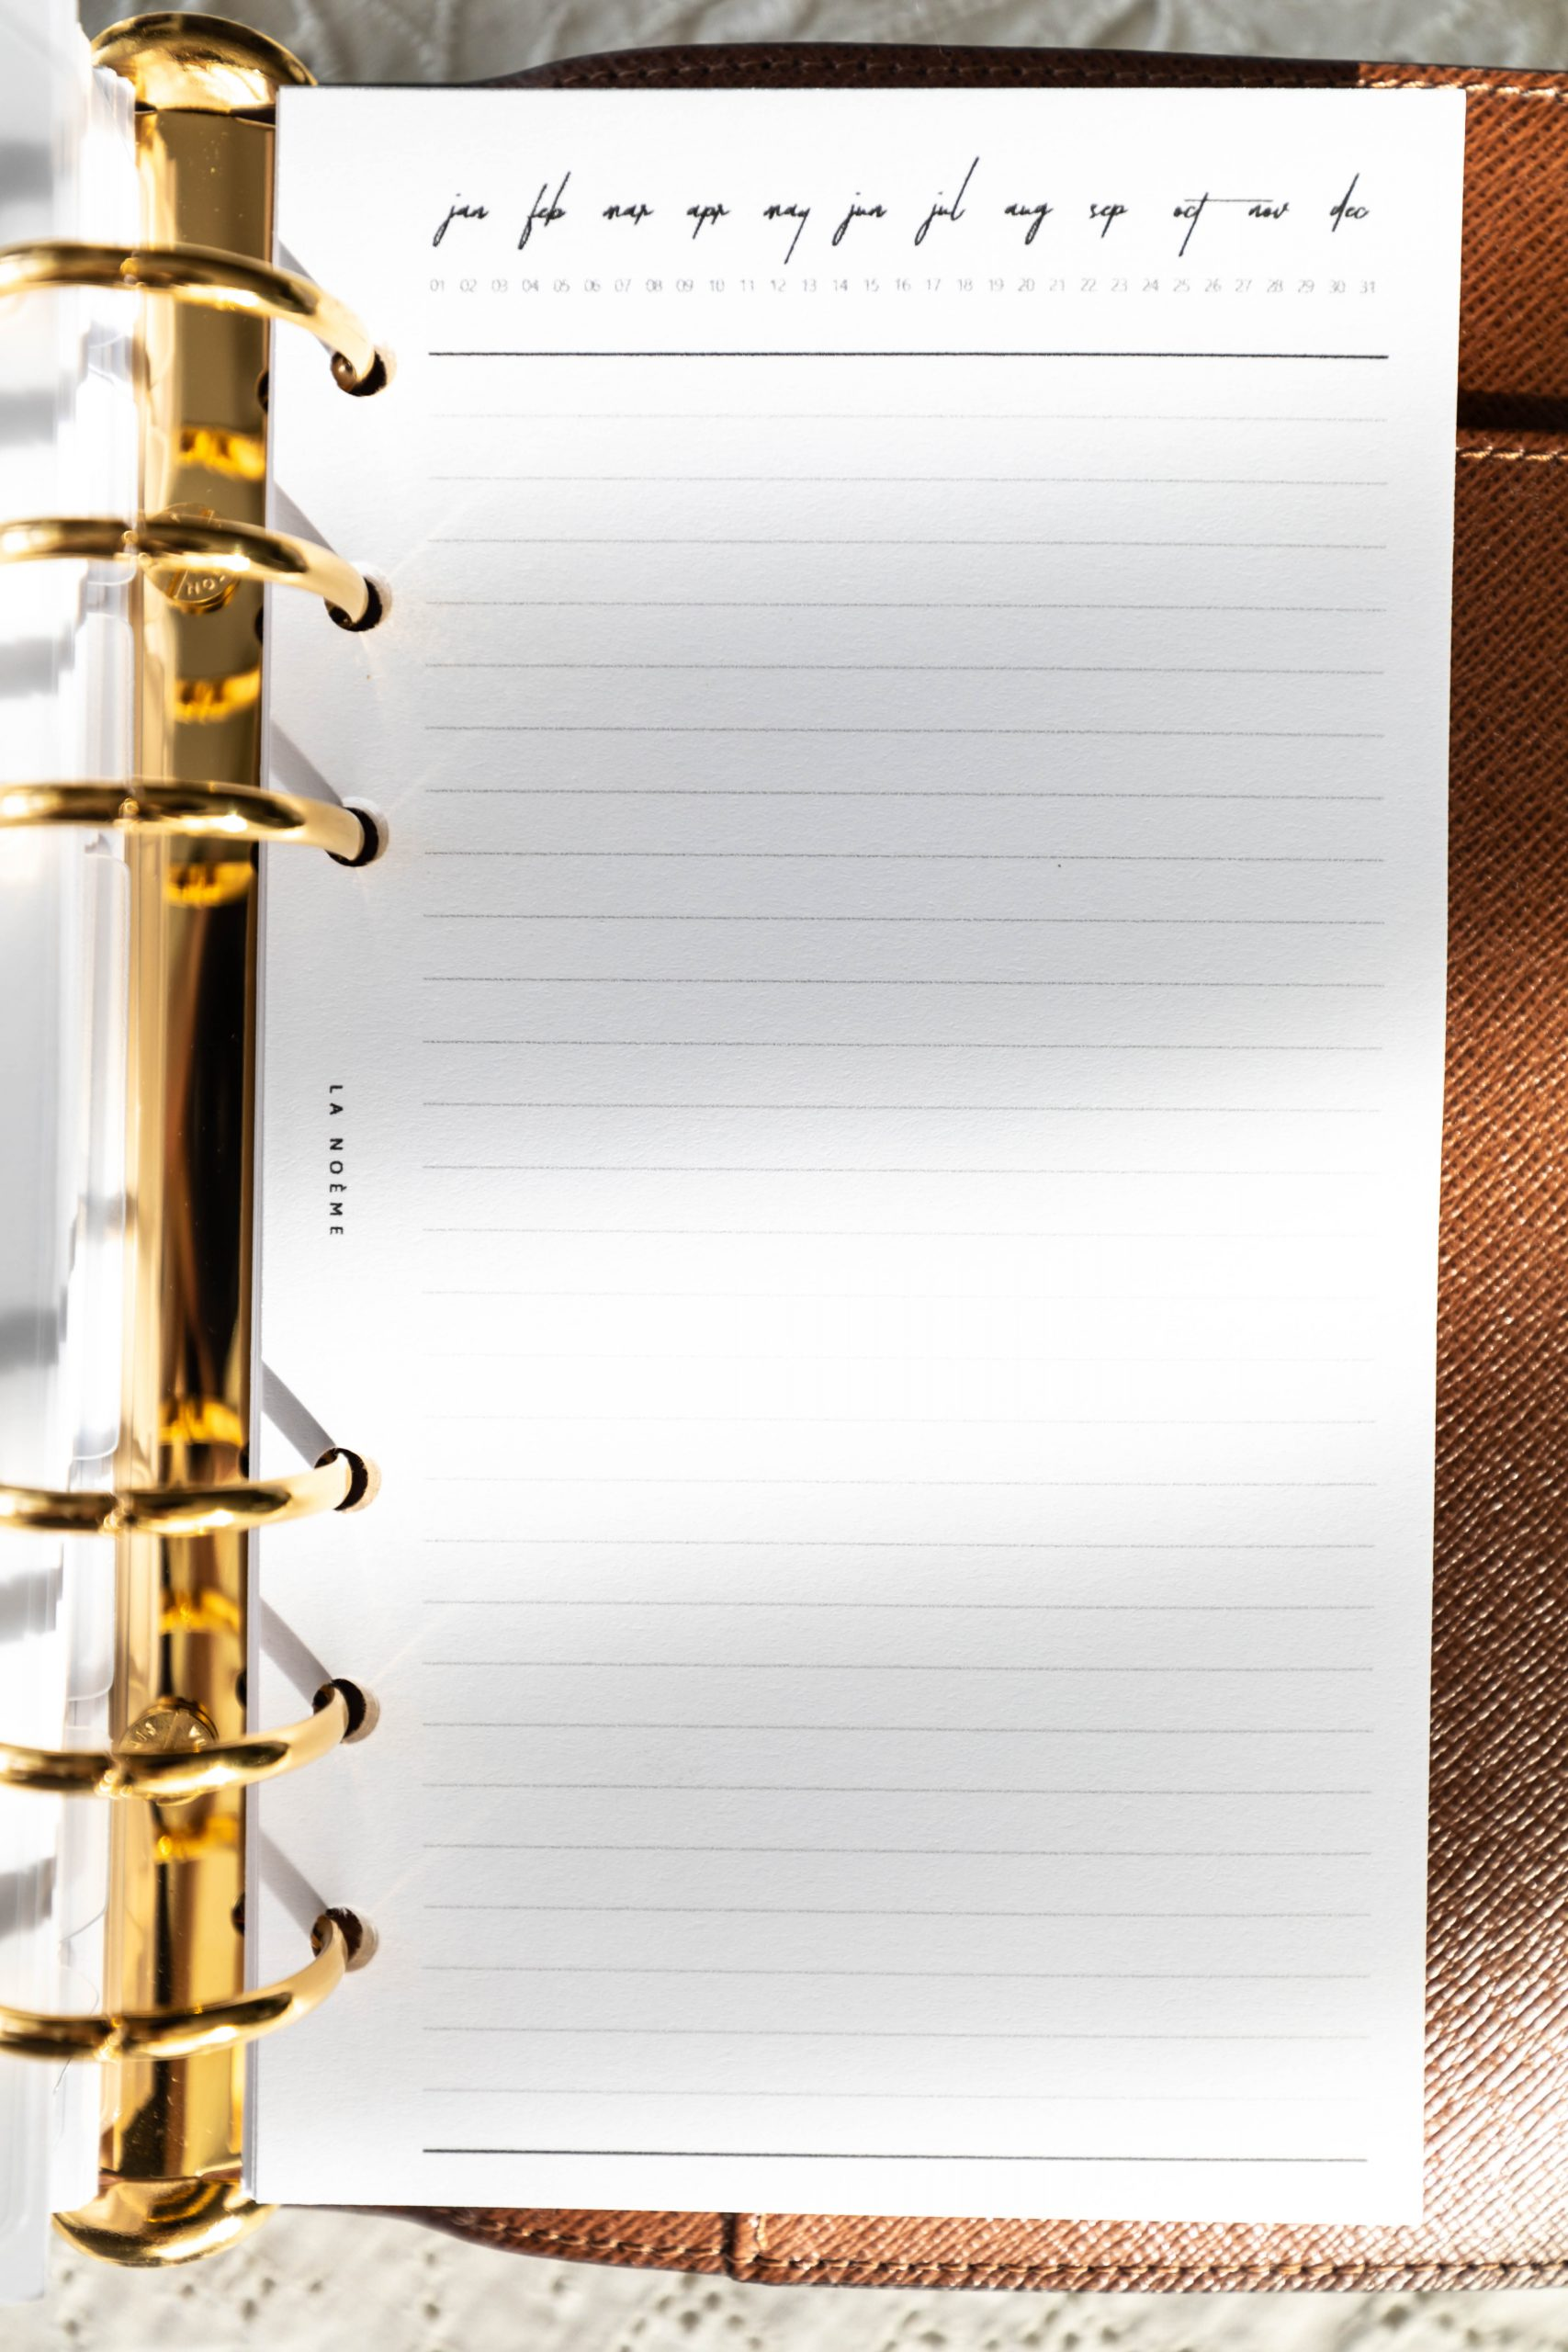 Customizable Lined Note Pages Louis Vuitton Agenda Setup and Organization by Annie Fairfax